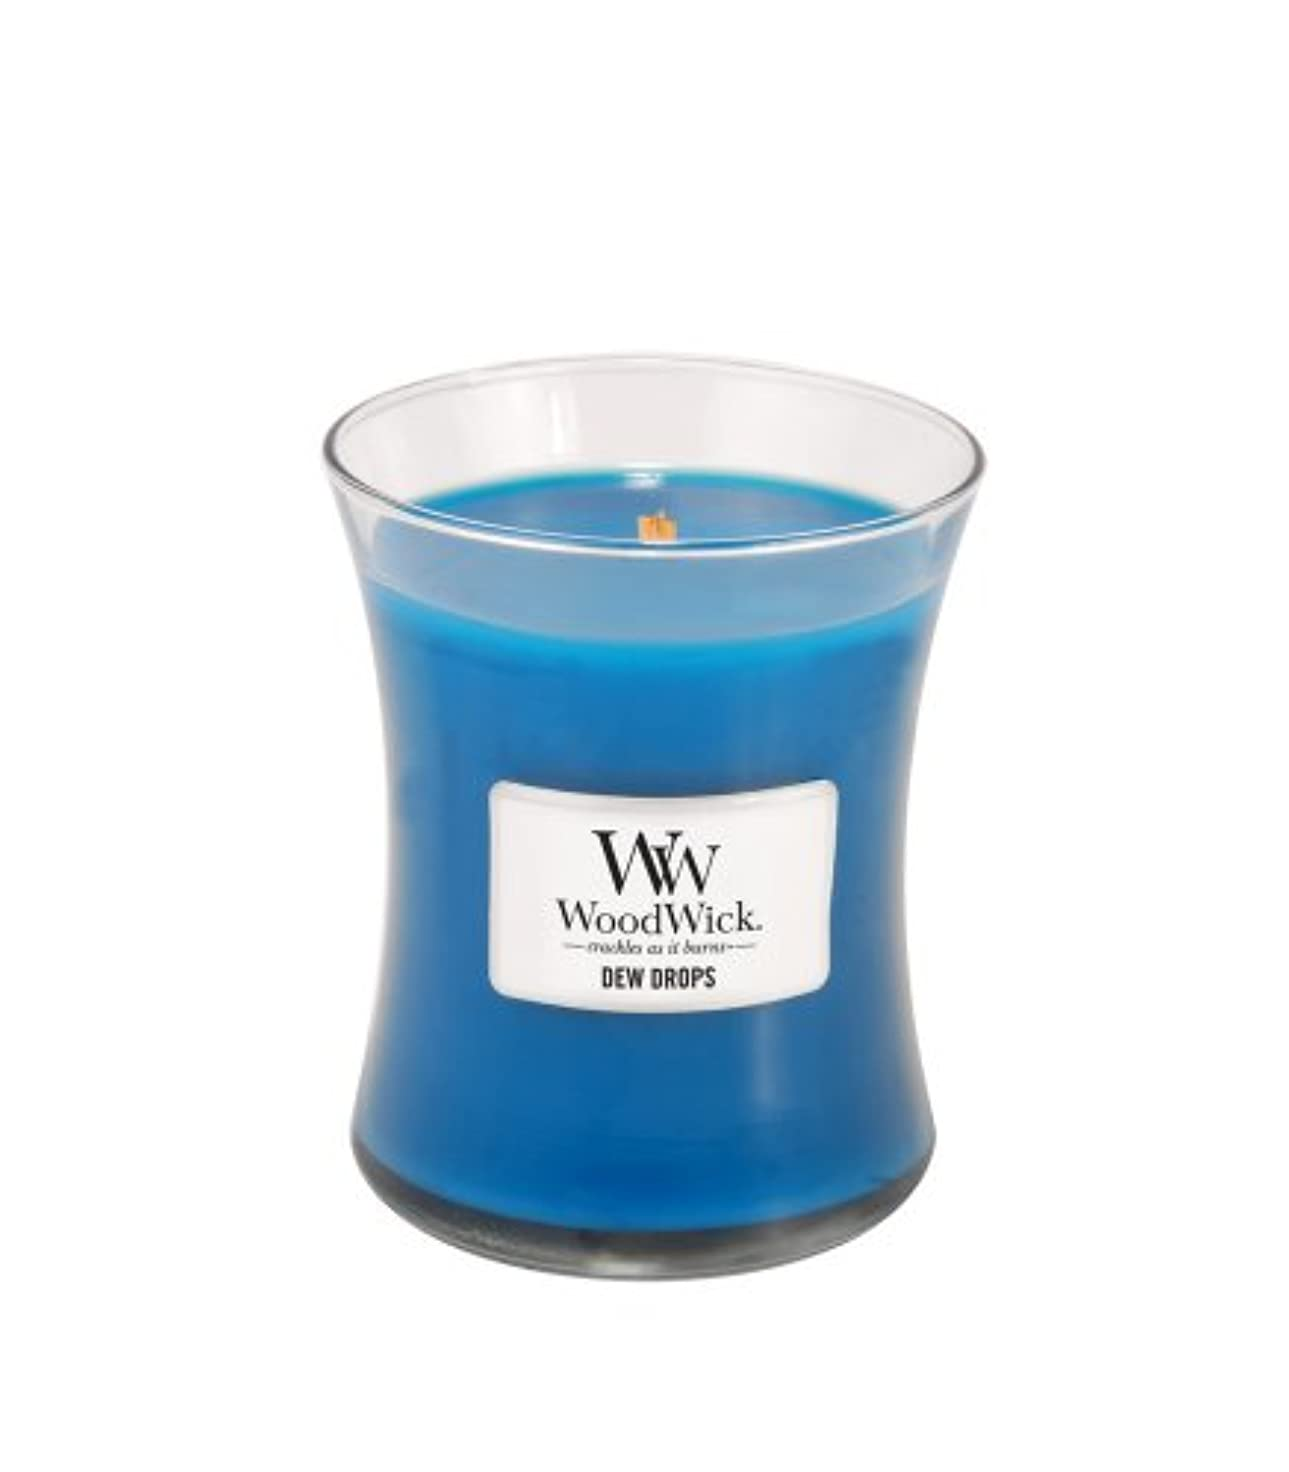 雹マージン病者(Medium) - WoodWick Dew Drops Fragrance Jar Candle, Medium